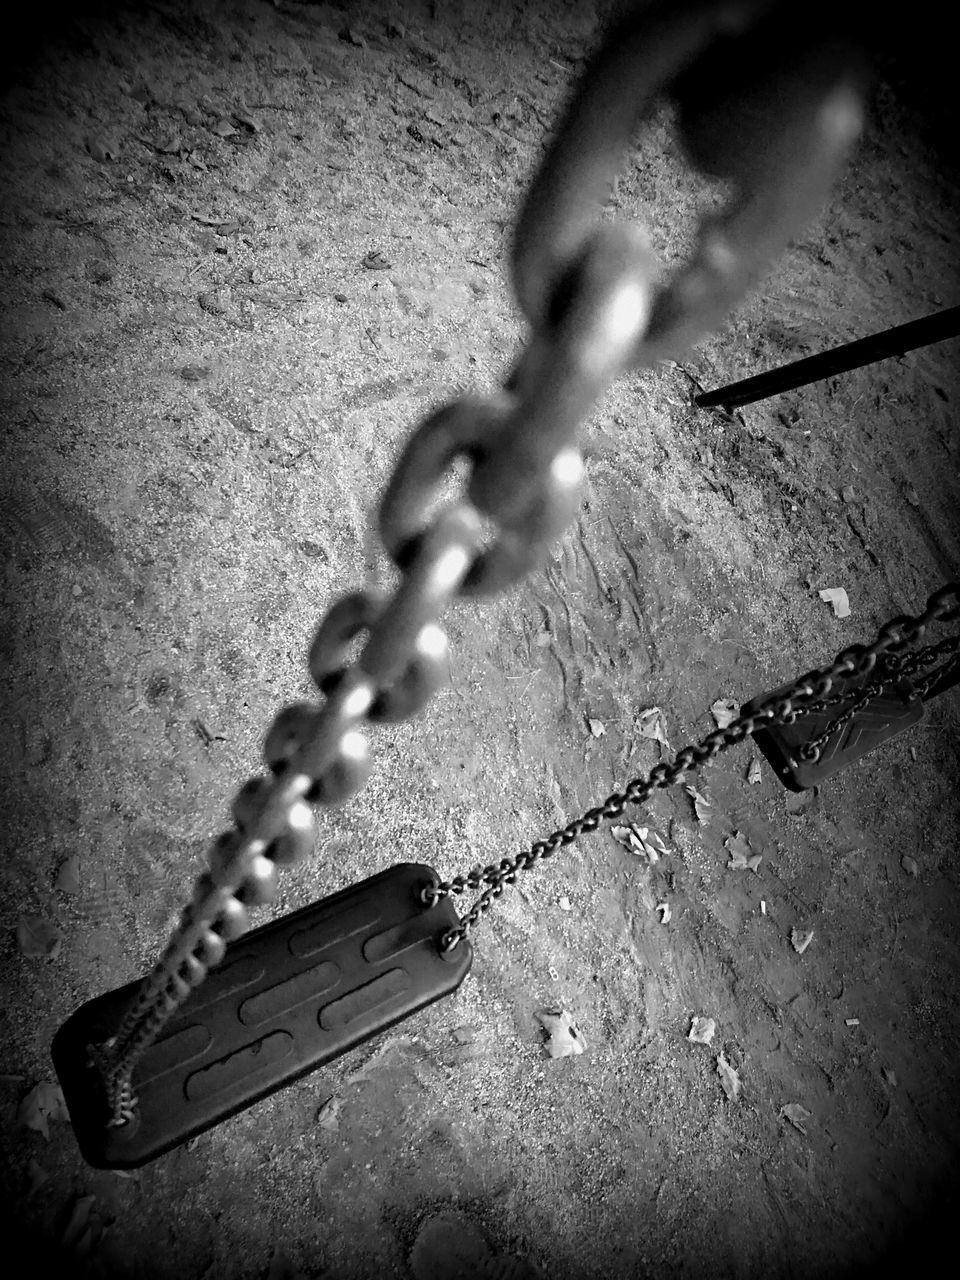 CLOSE-UP OF CHAIN HANGING AGAINST WALL